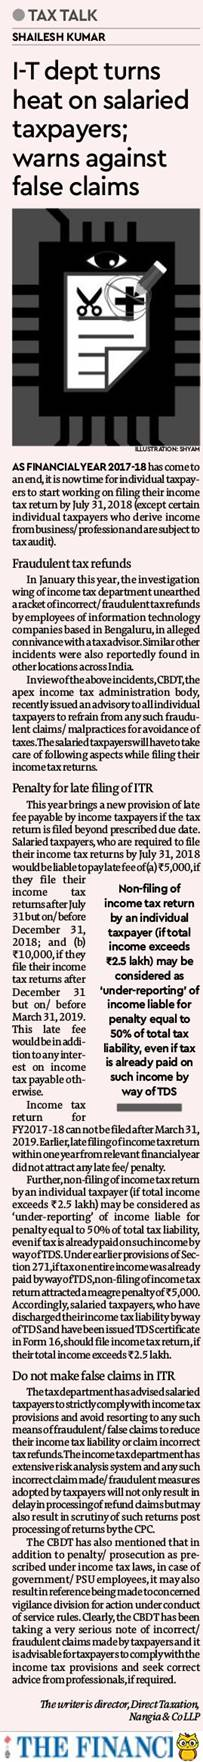 income-tax-department-turns-heat-on-salaried-taxpayers-warns-against-false-claims-shailesh-kumar